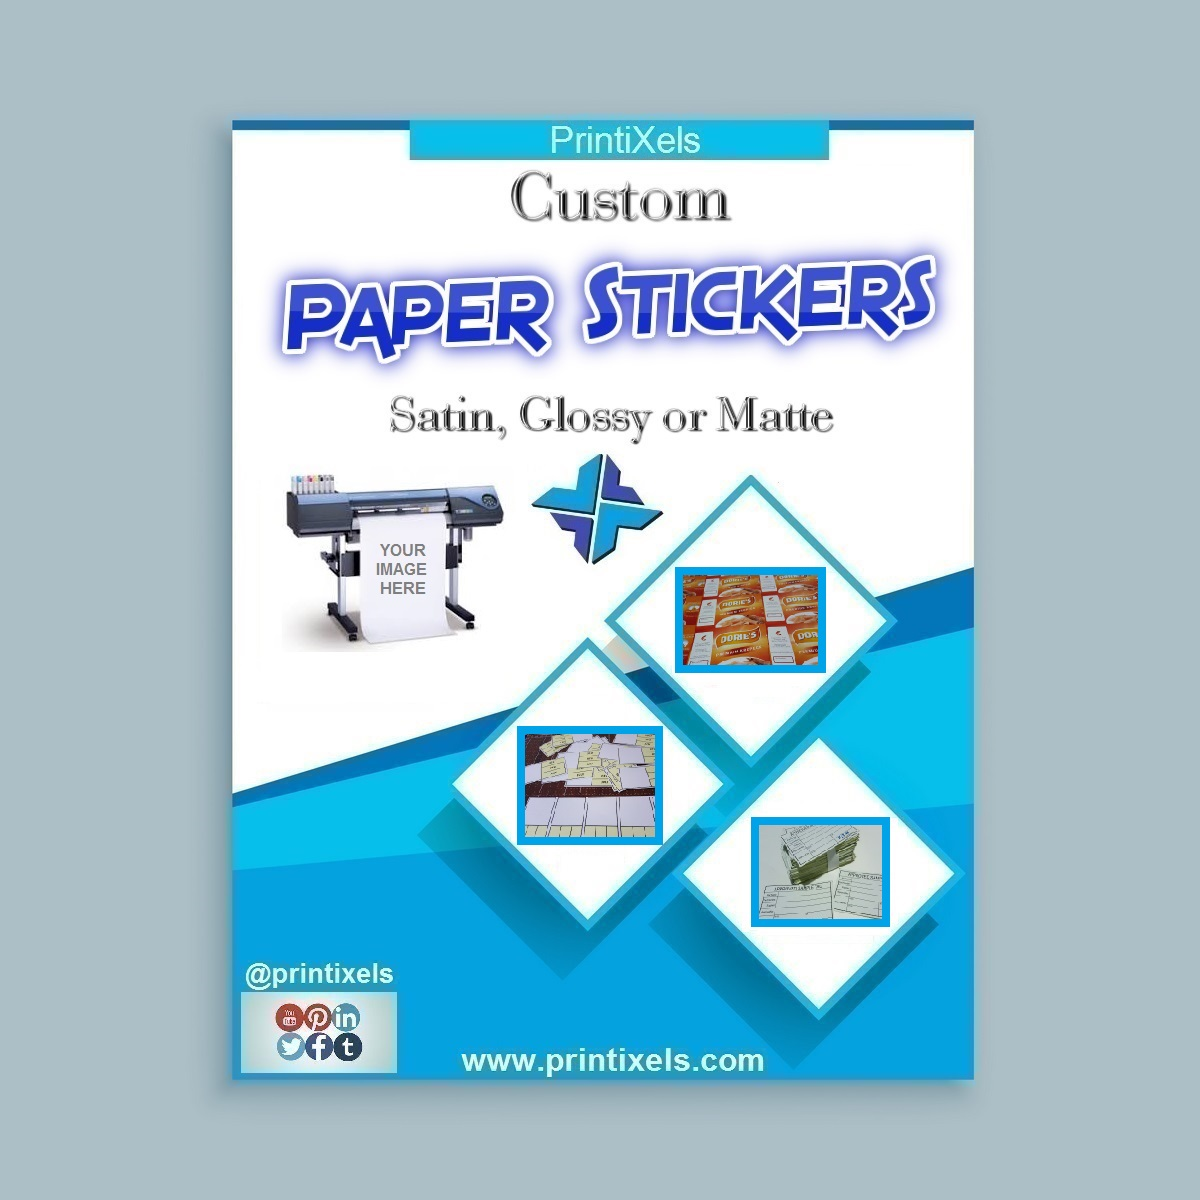 Custom Paper Sticker Labels - Satin, Glossy or Matte